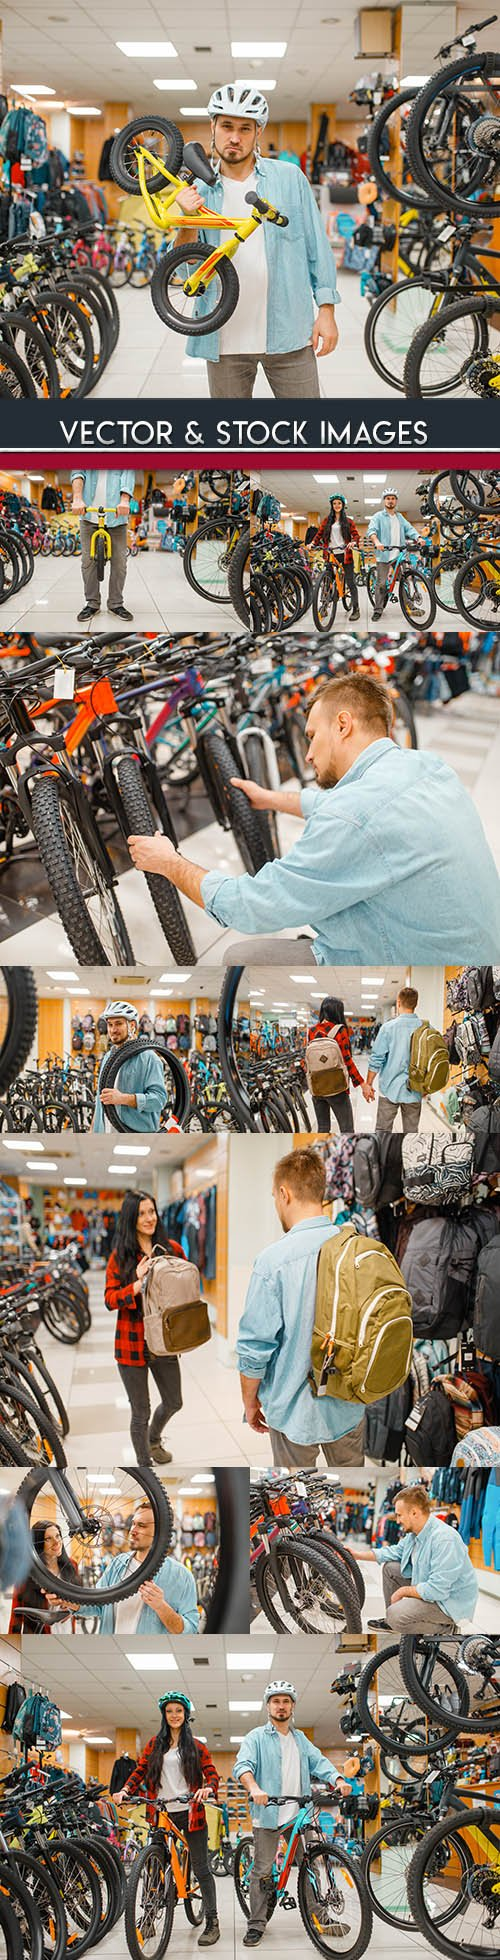 Cycle shop purchase of bicycle and accessories